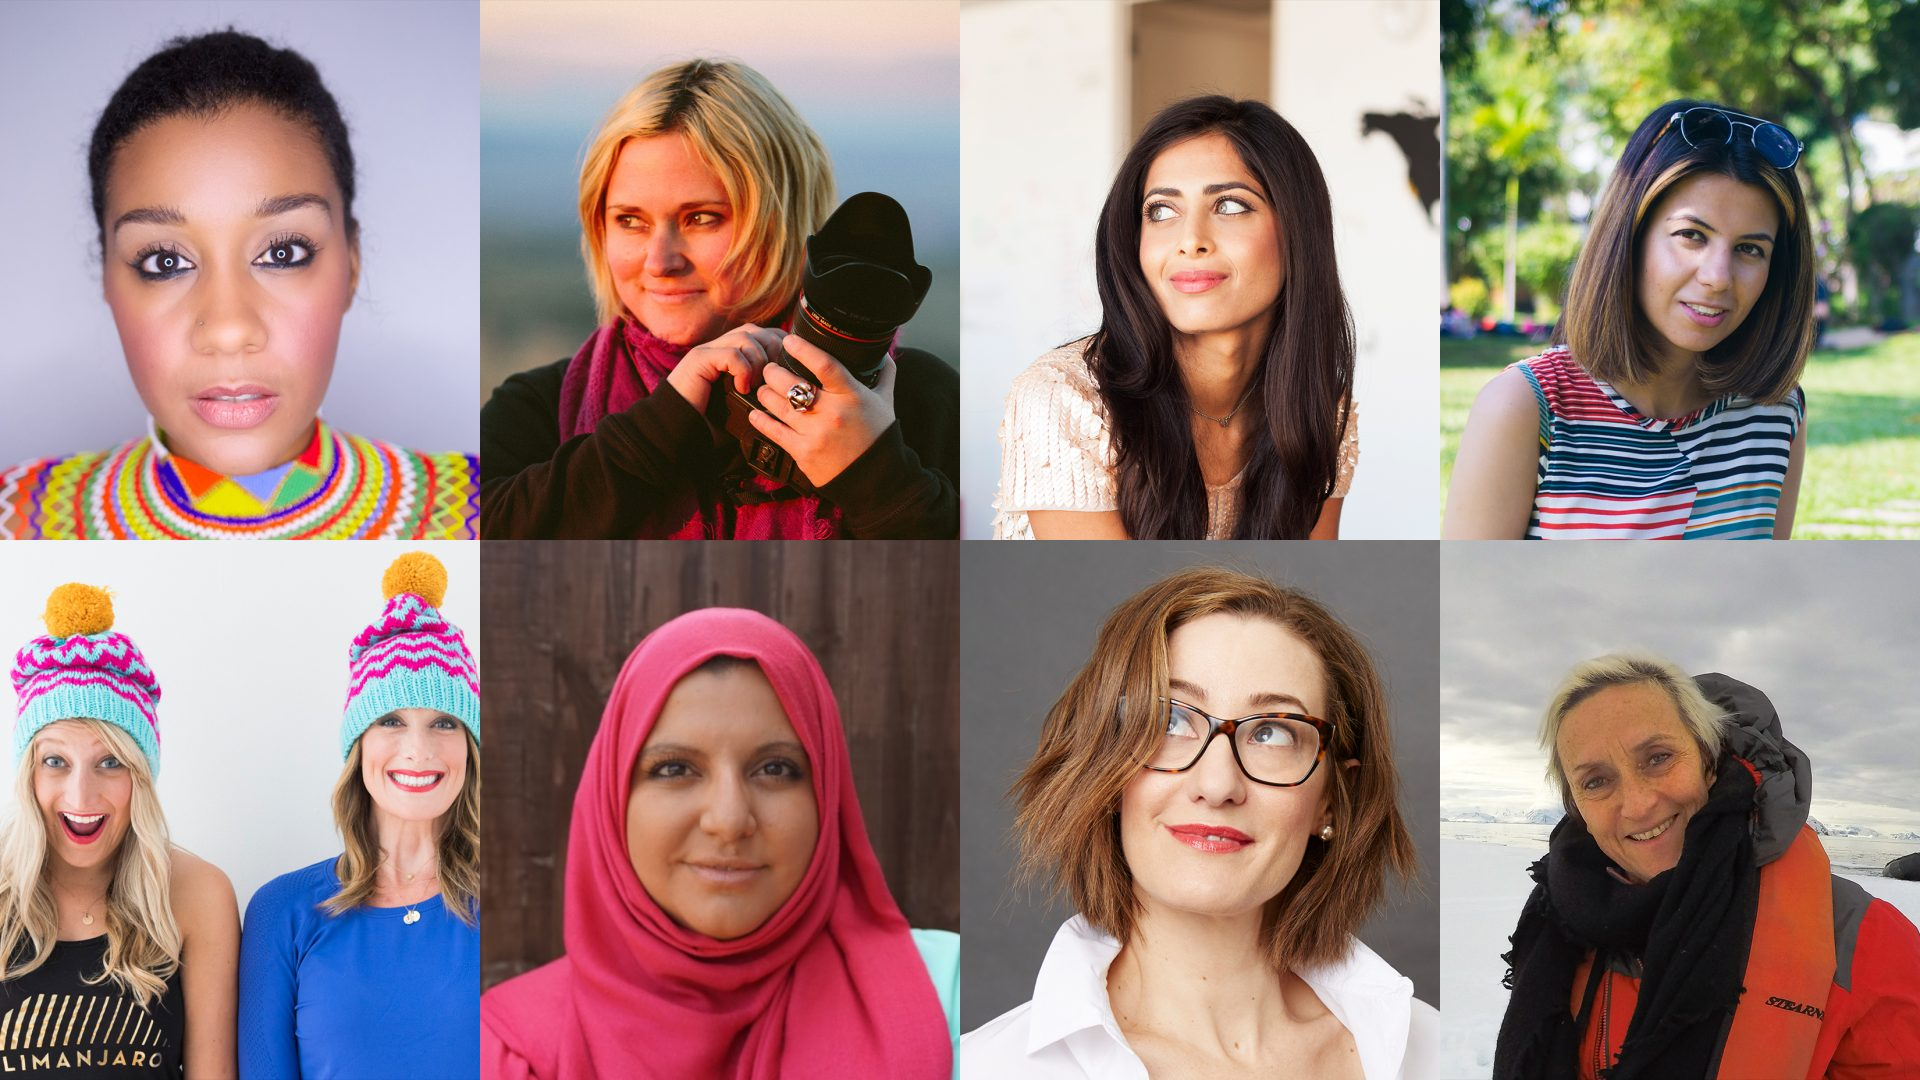 Dame disruptors: Meet the women changing travel